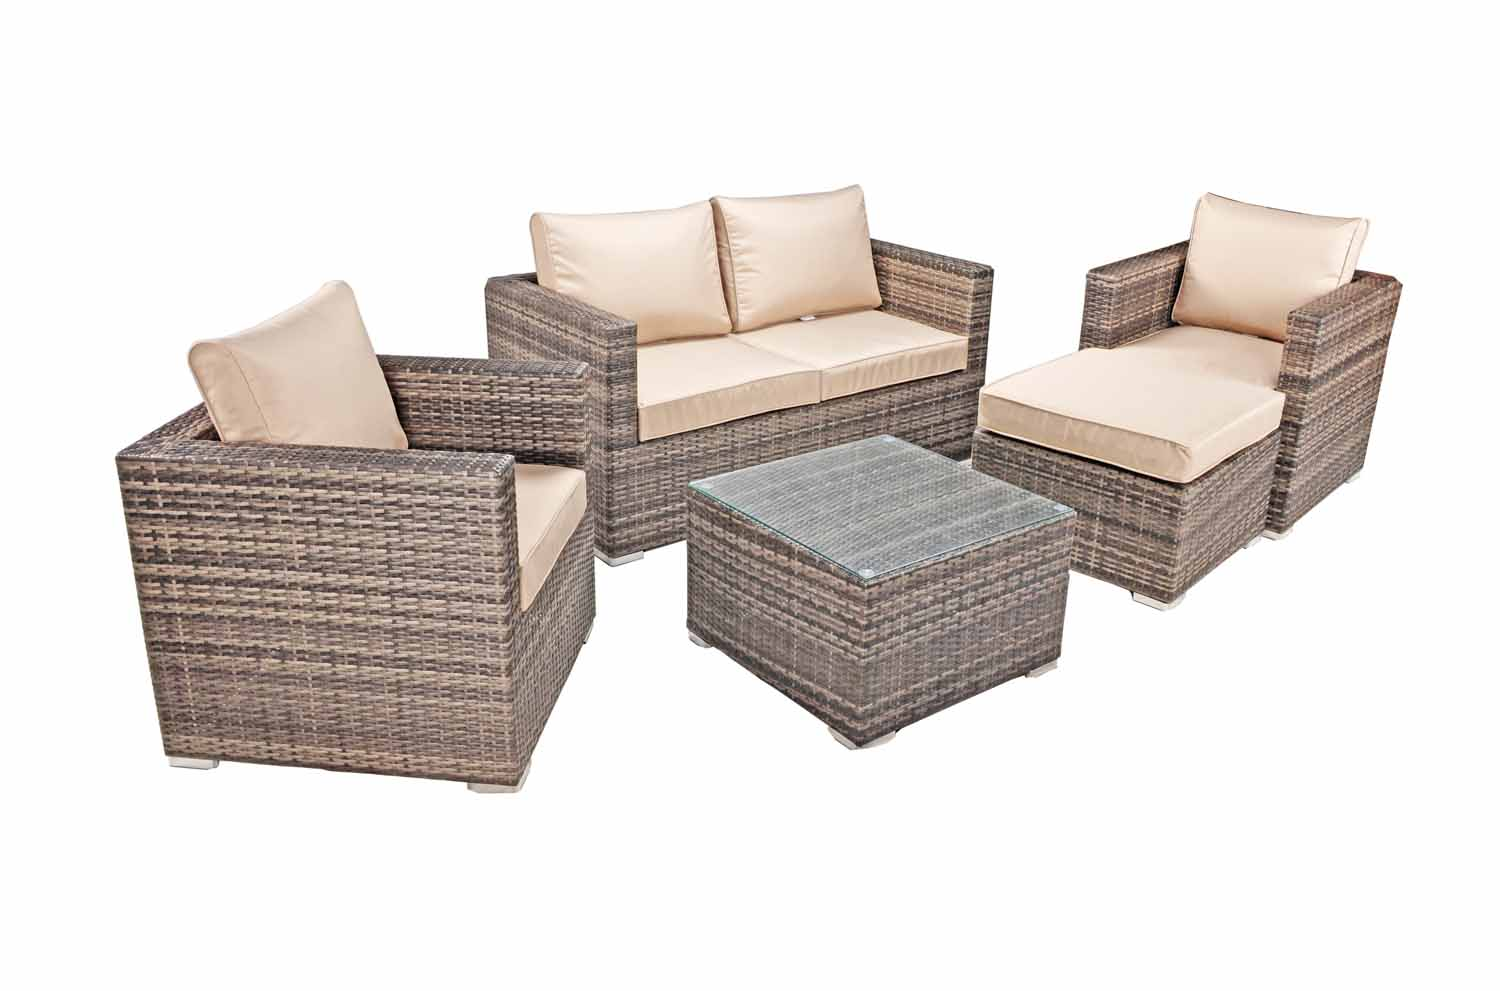 https://www.firstfurniture.co.uk/pub/media/catalog/product/k/e/kensington_5pc_sofa_set_with_coffee_table_and_ottoman_1.jpg